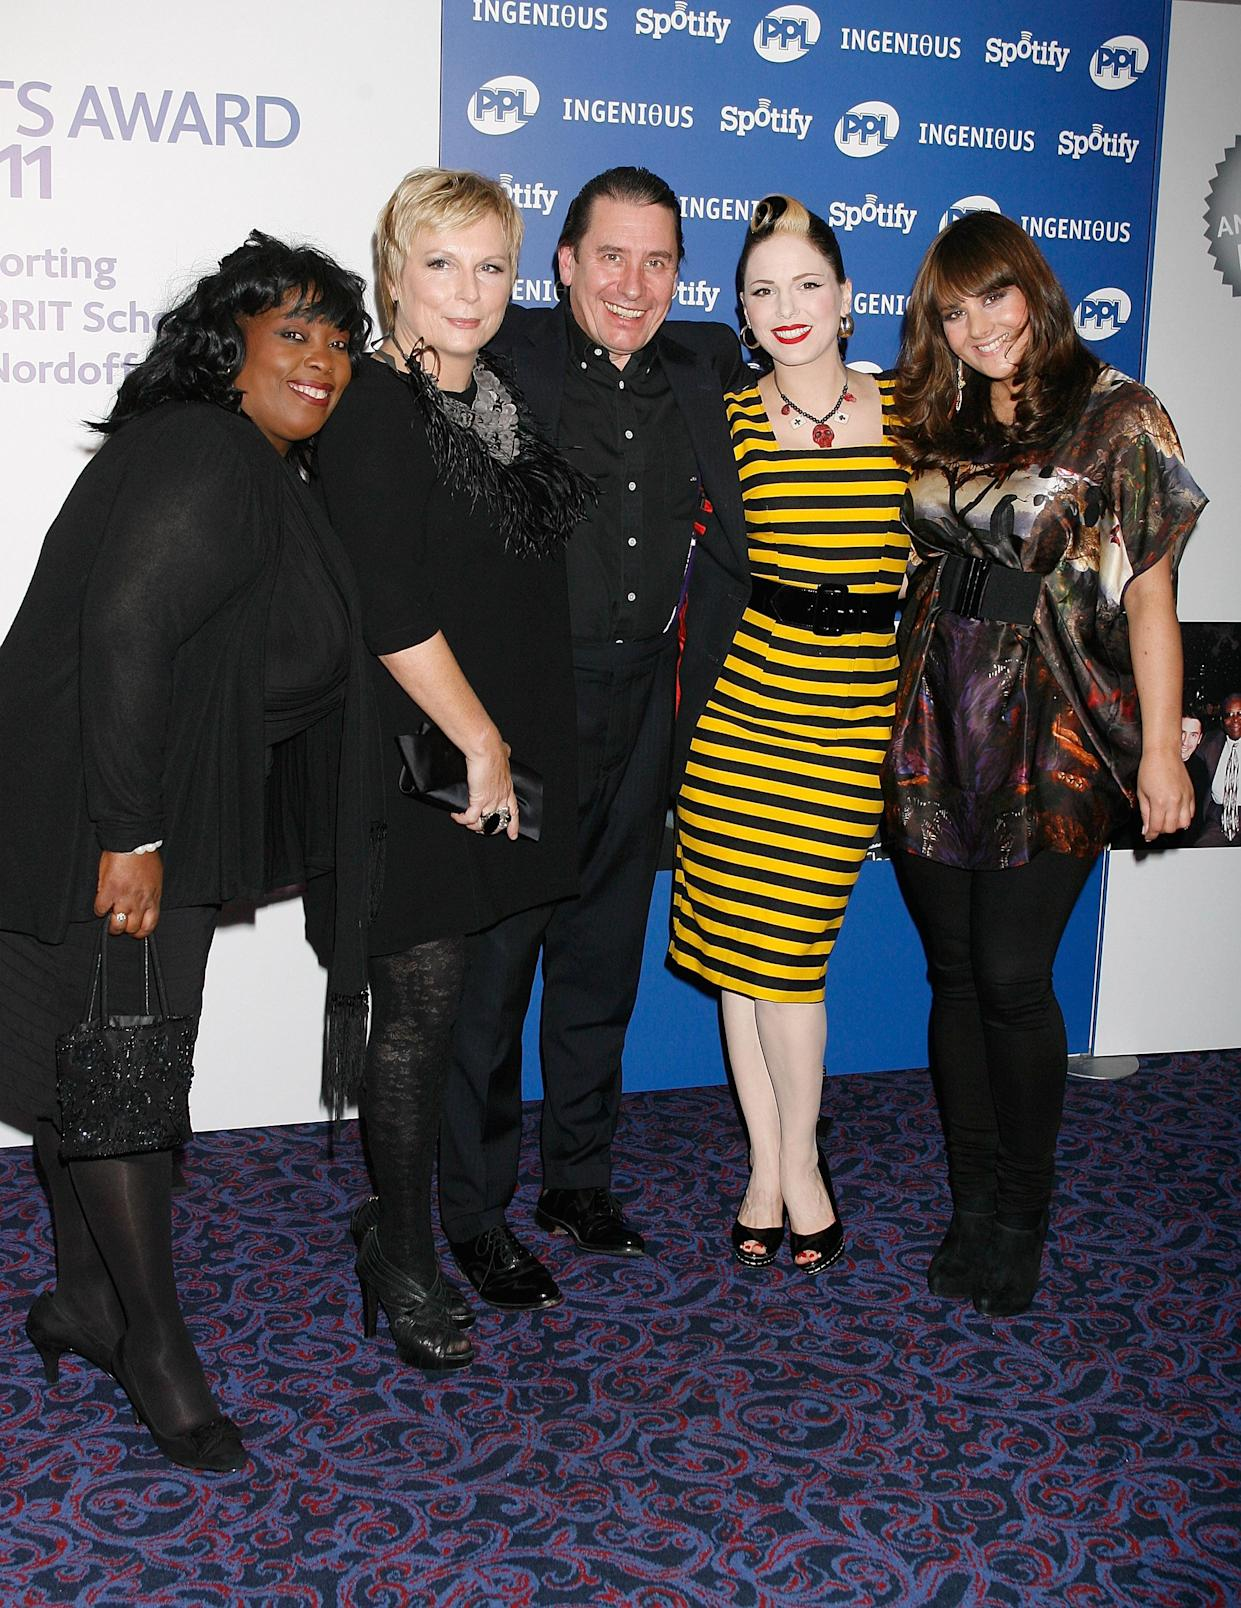 Rumer,Jennifer Saunders,Ruby Turner,Jools Holland and Imelda May arrive at the Music Industry Awards at the Grosvenor House Hotel in London